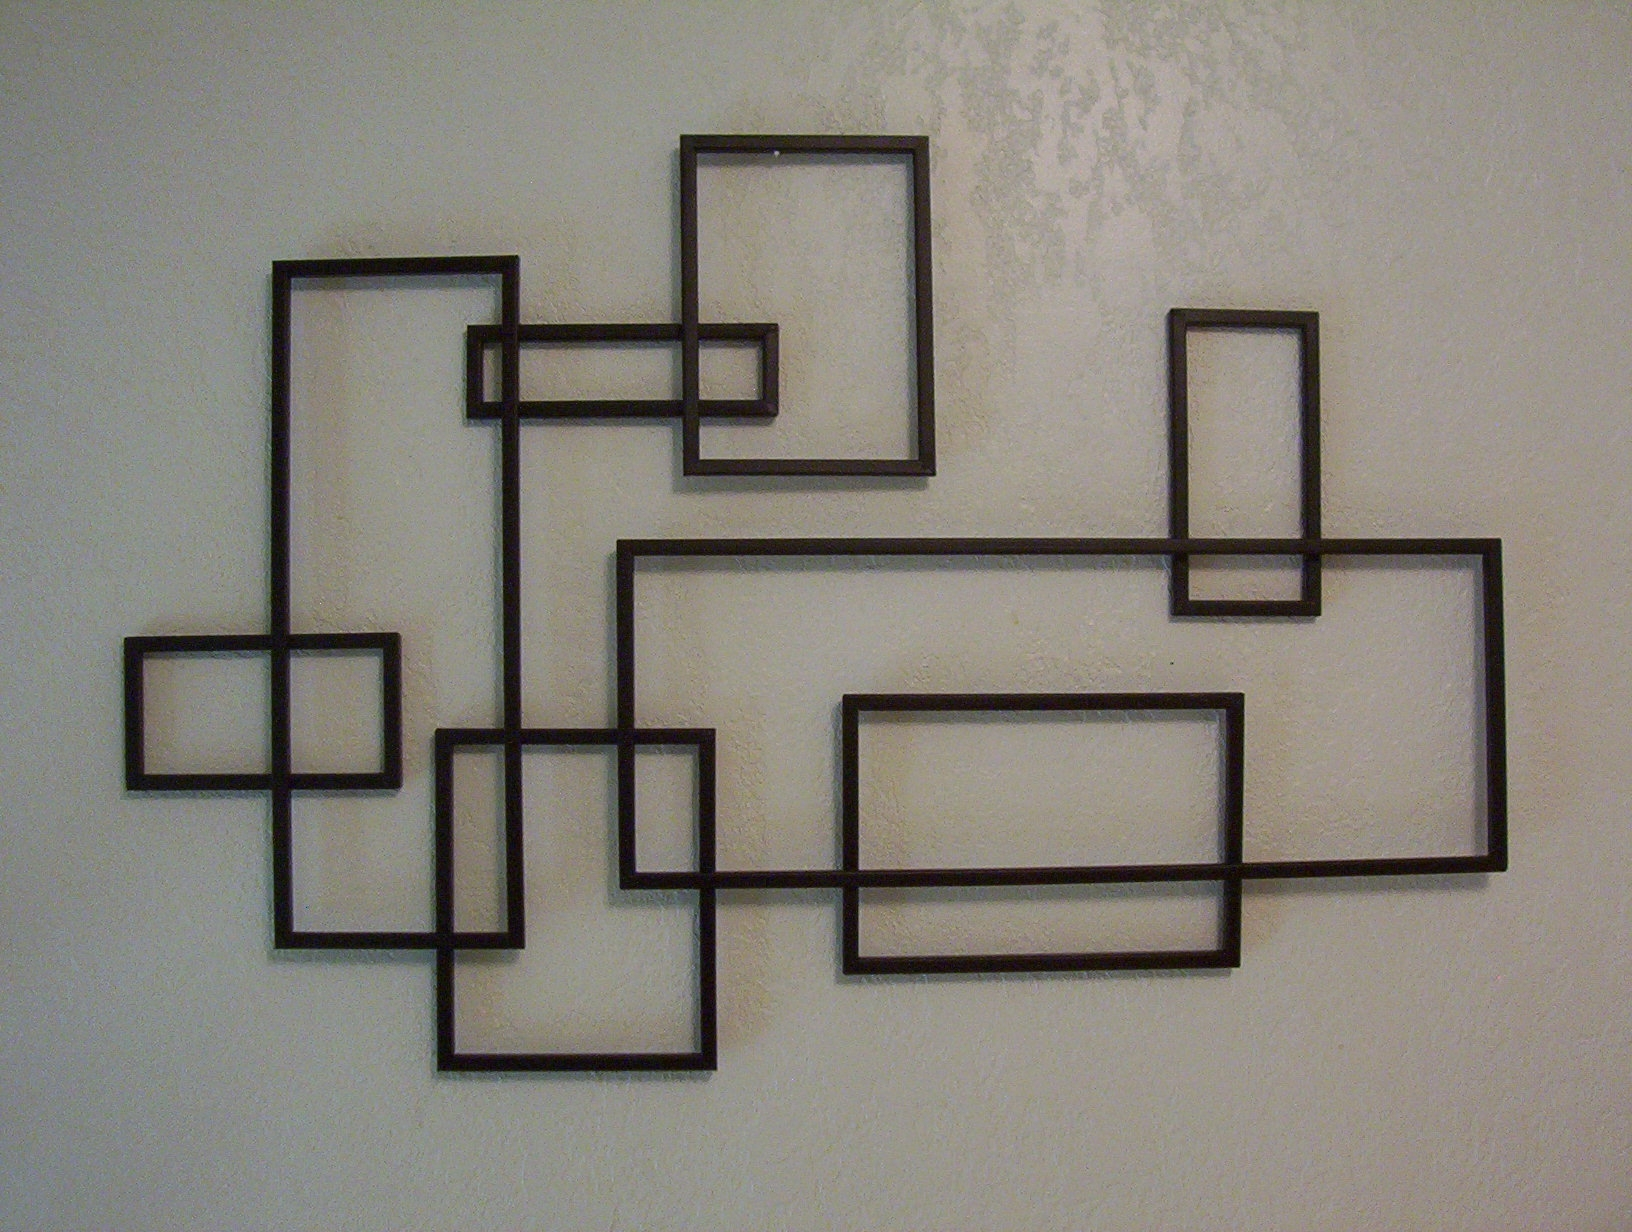 Wall Art Designs: Black Metal Wall Art Mid Century Modern De Stijl Intended For Best And Newest Abstract Iron Wall Art (View 19 of 20)